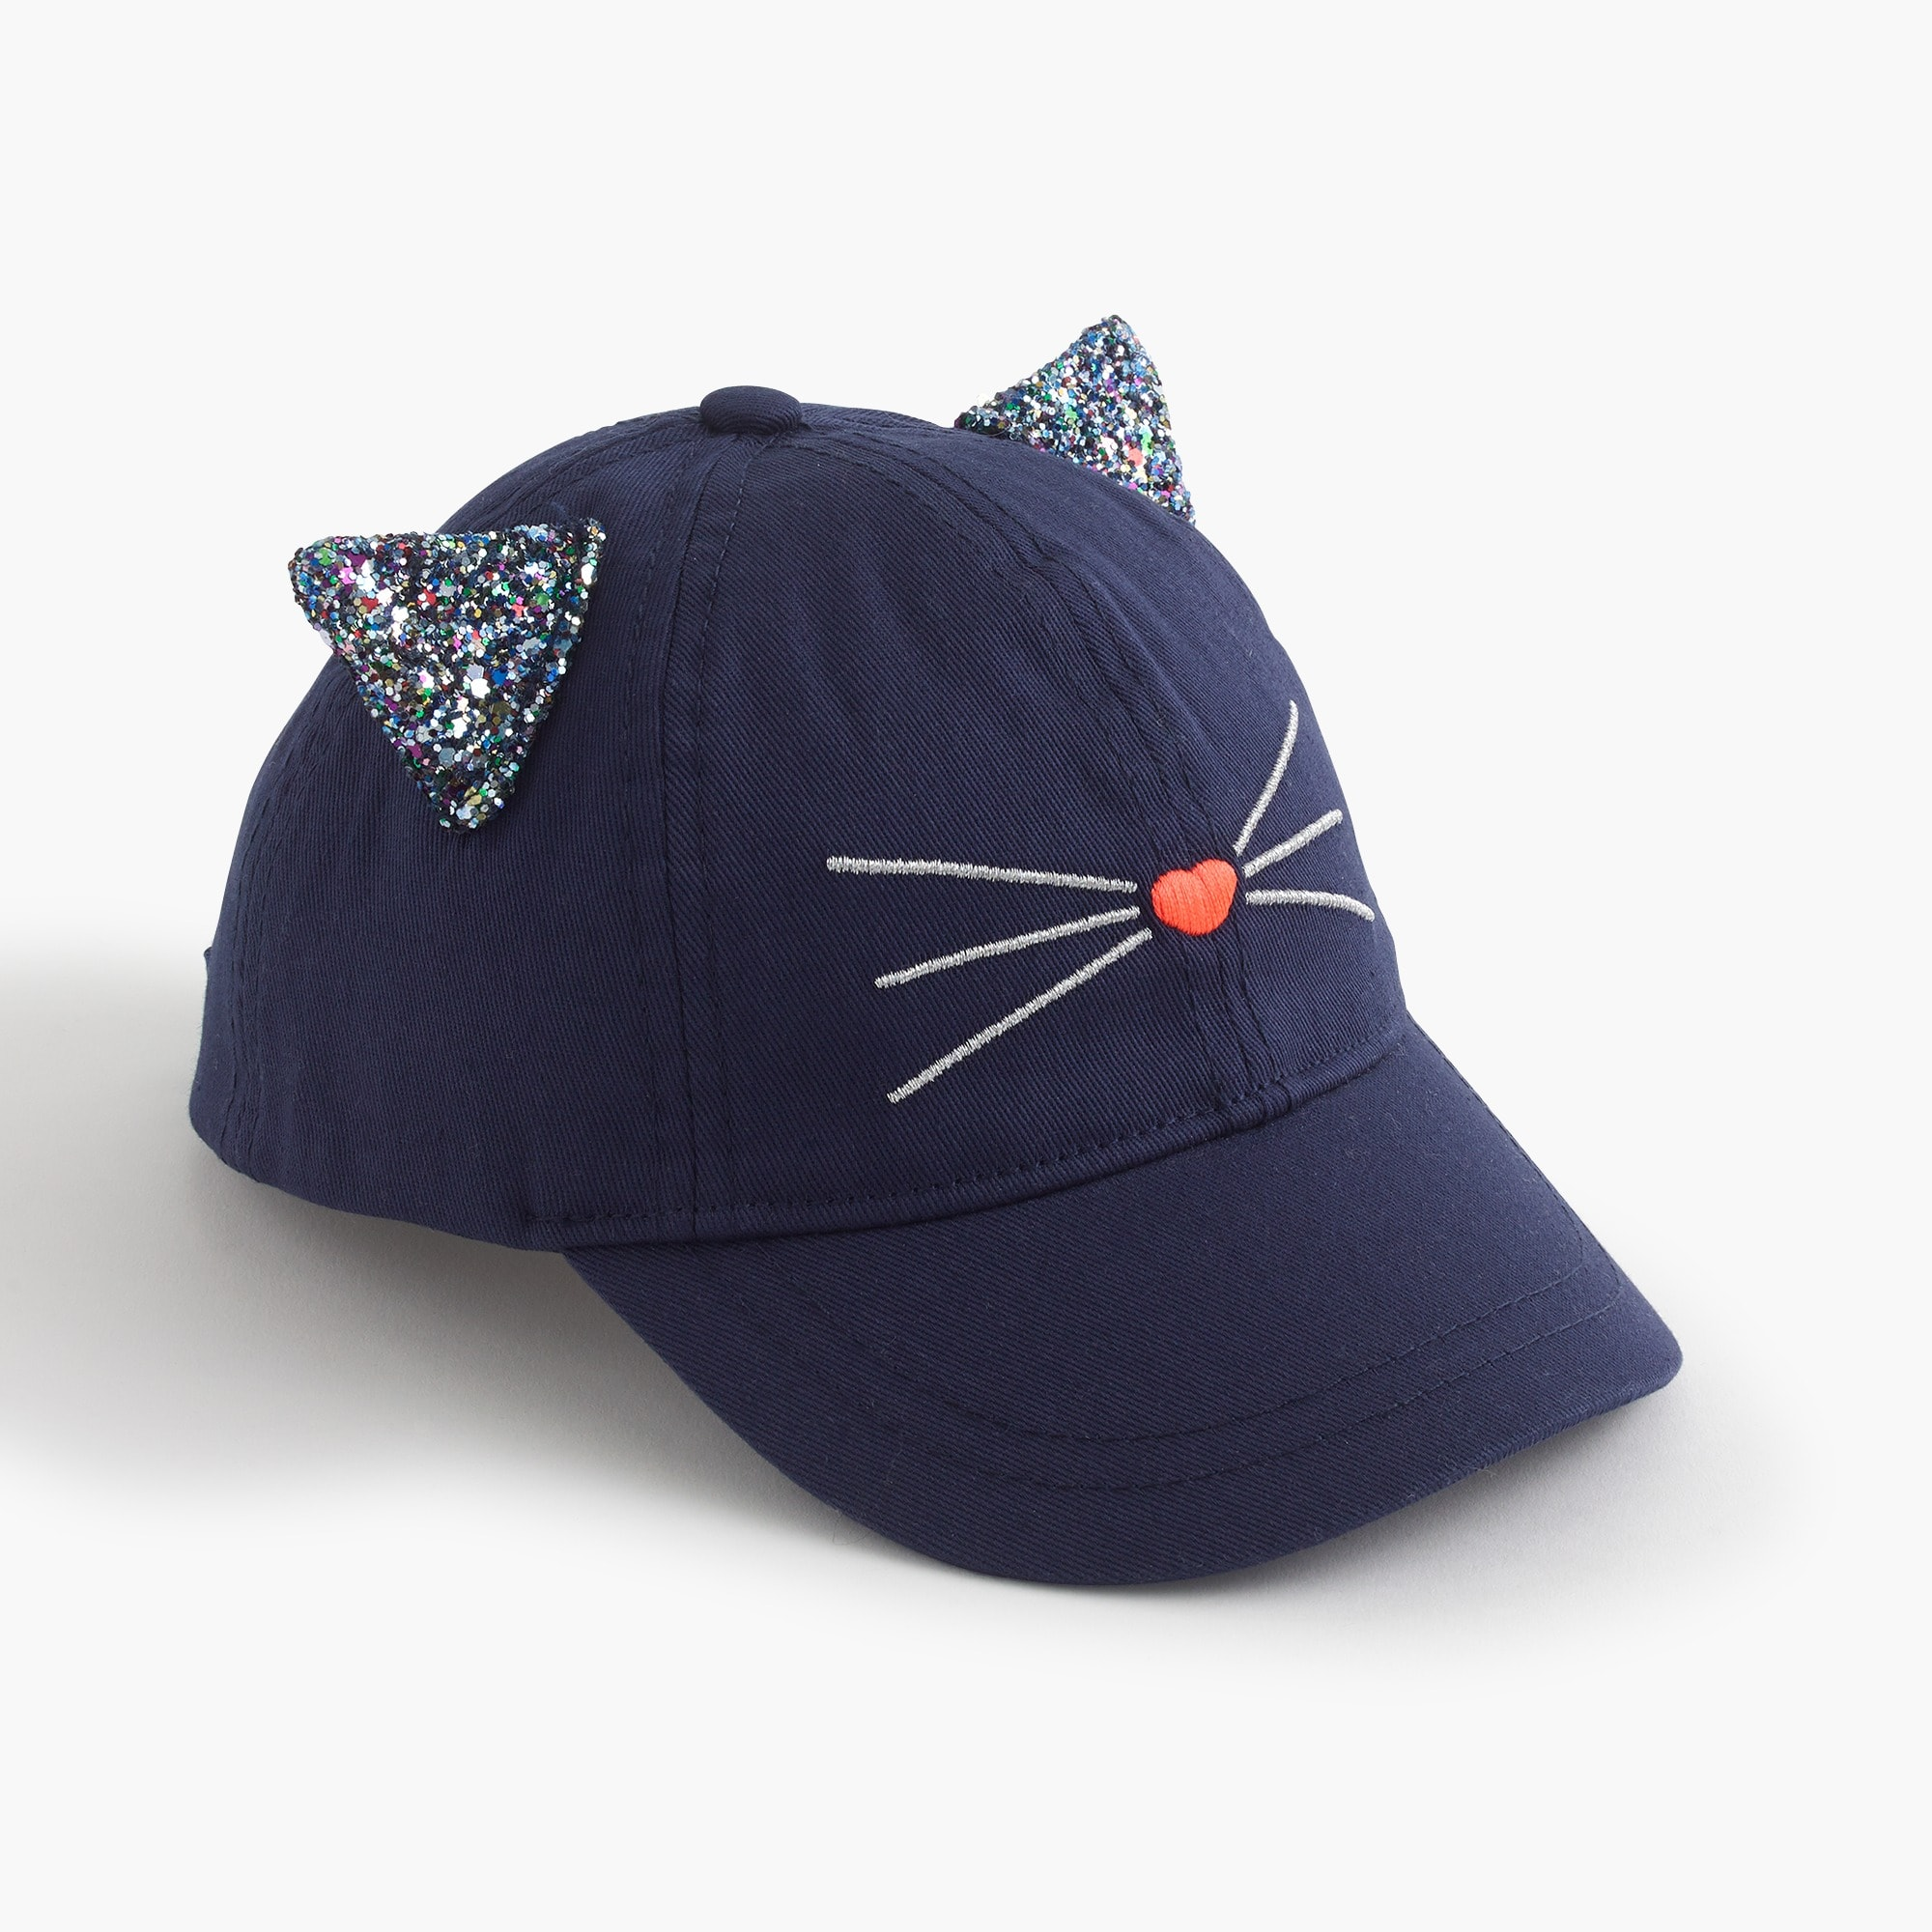 Girls' glitter cat hat girl jewelry & accessories c